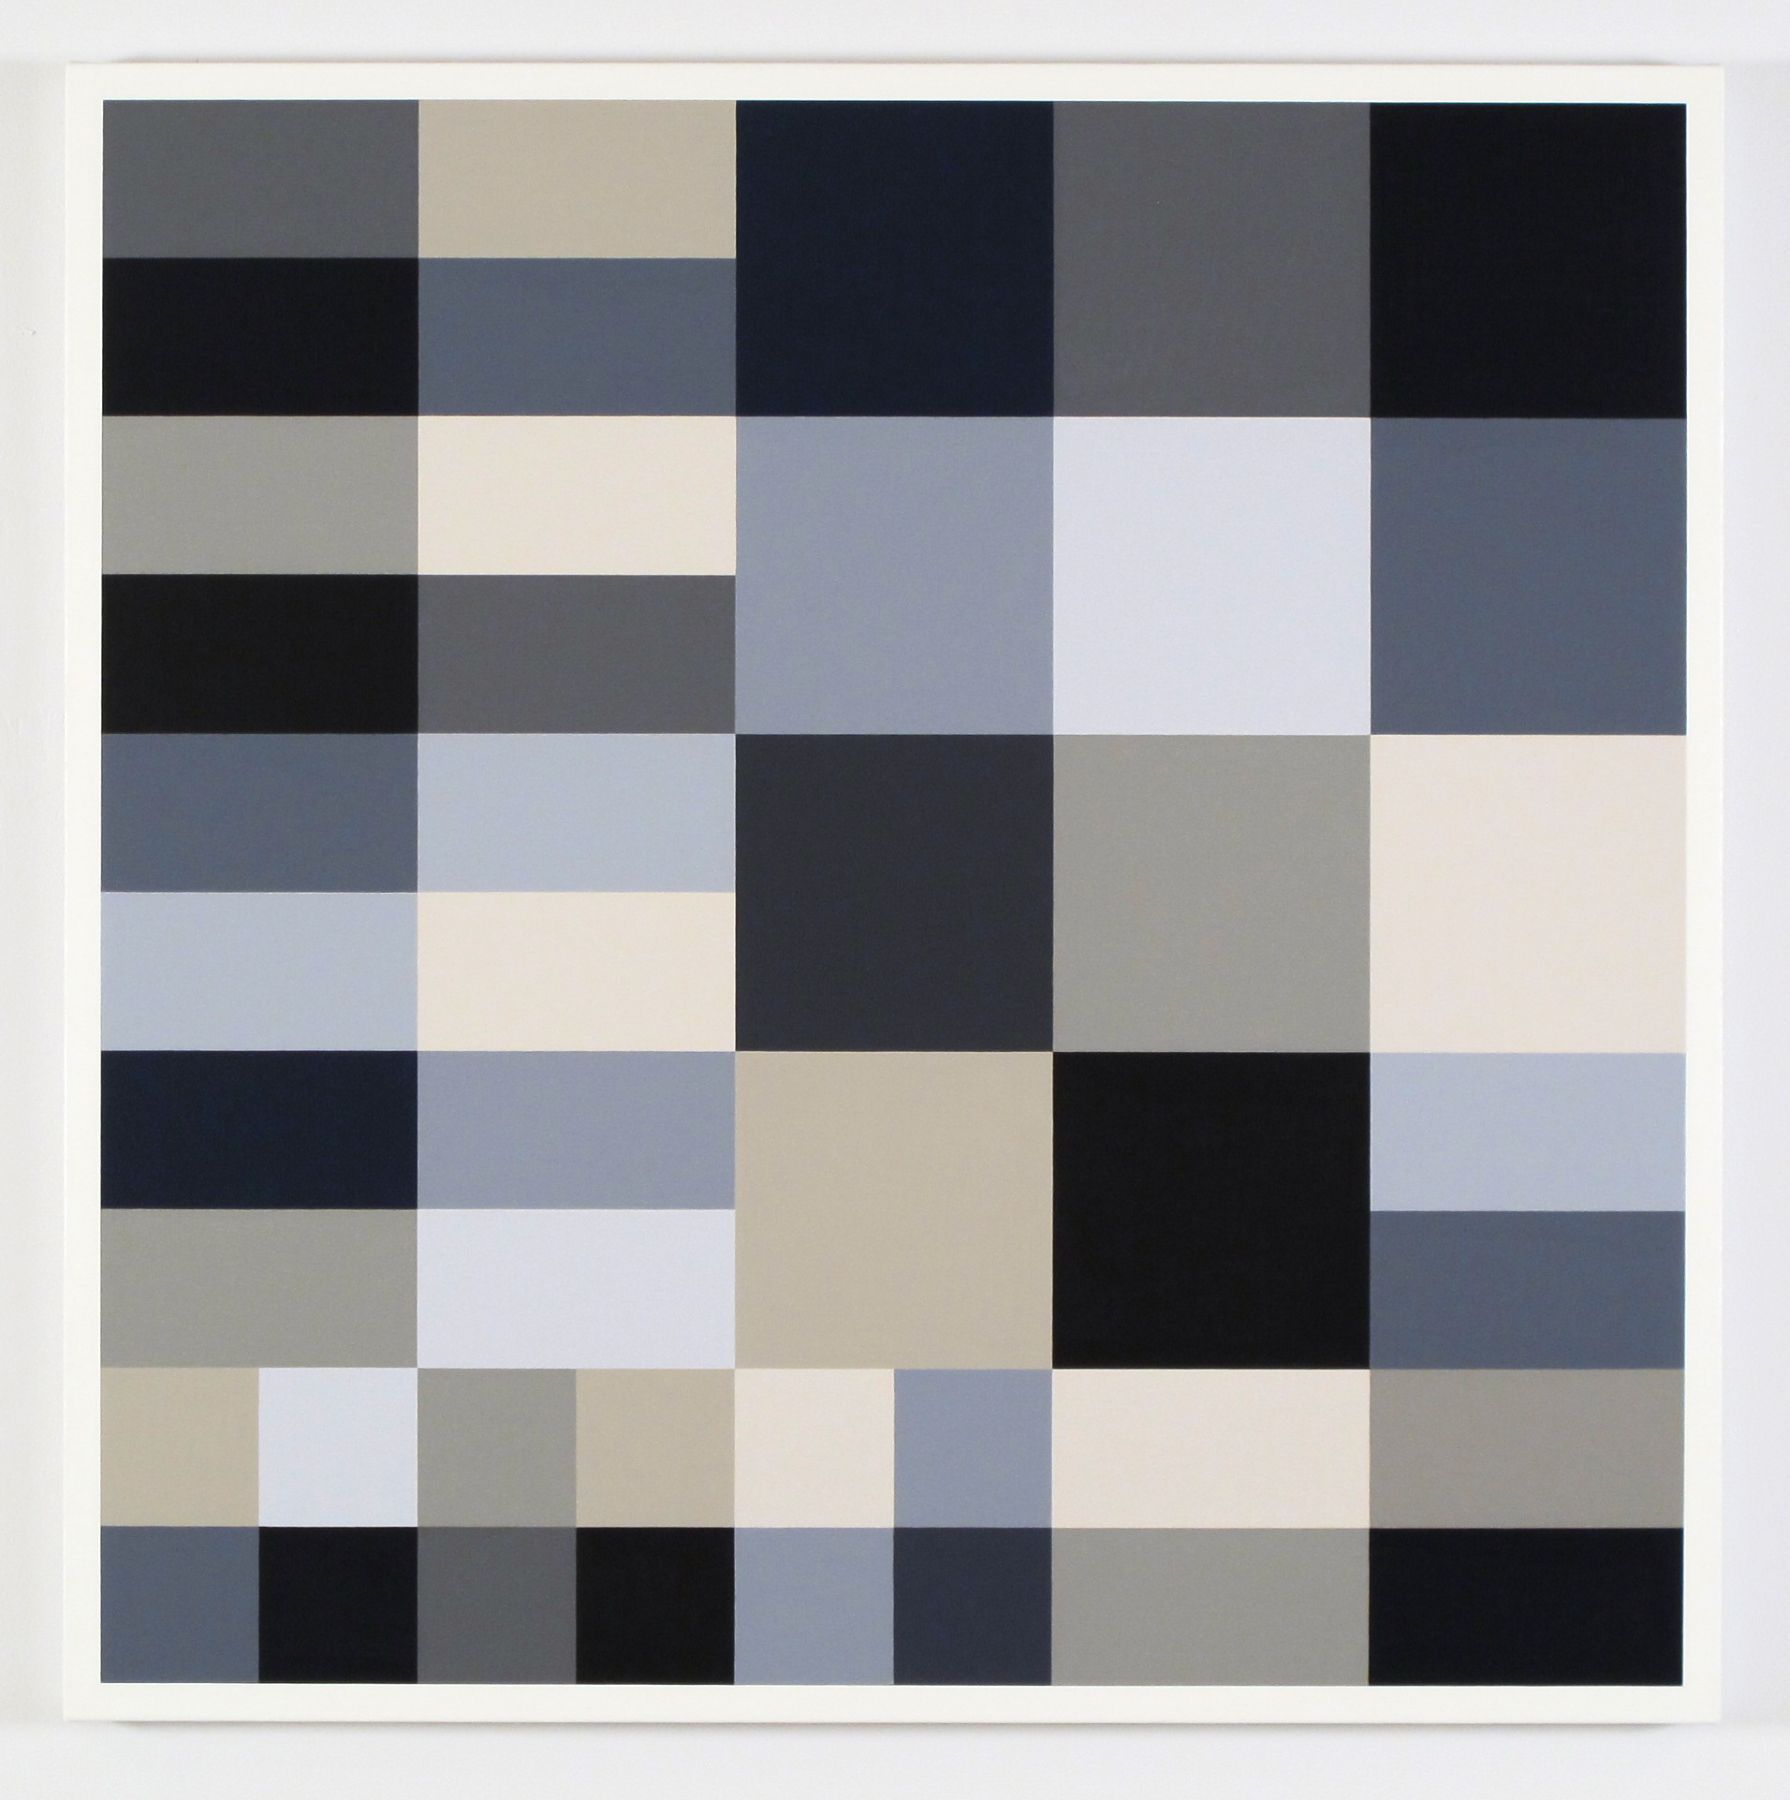 CARY SMITH, Grey Blocks #23, 2014